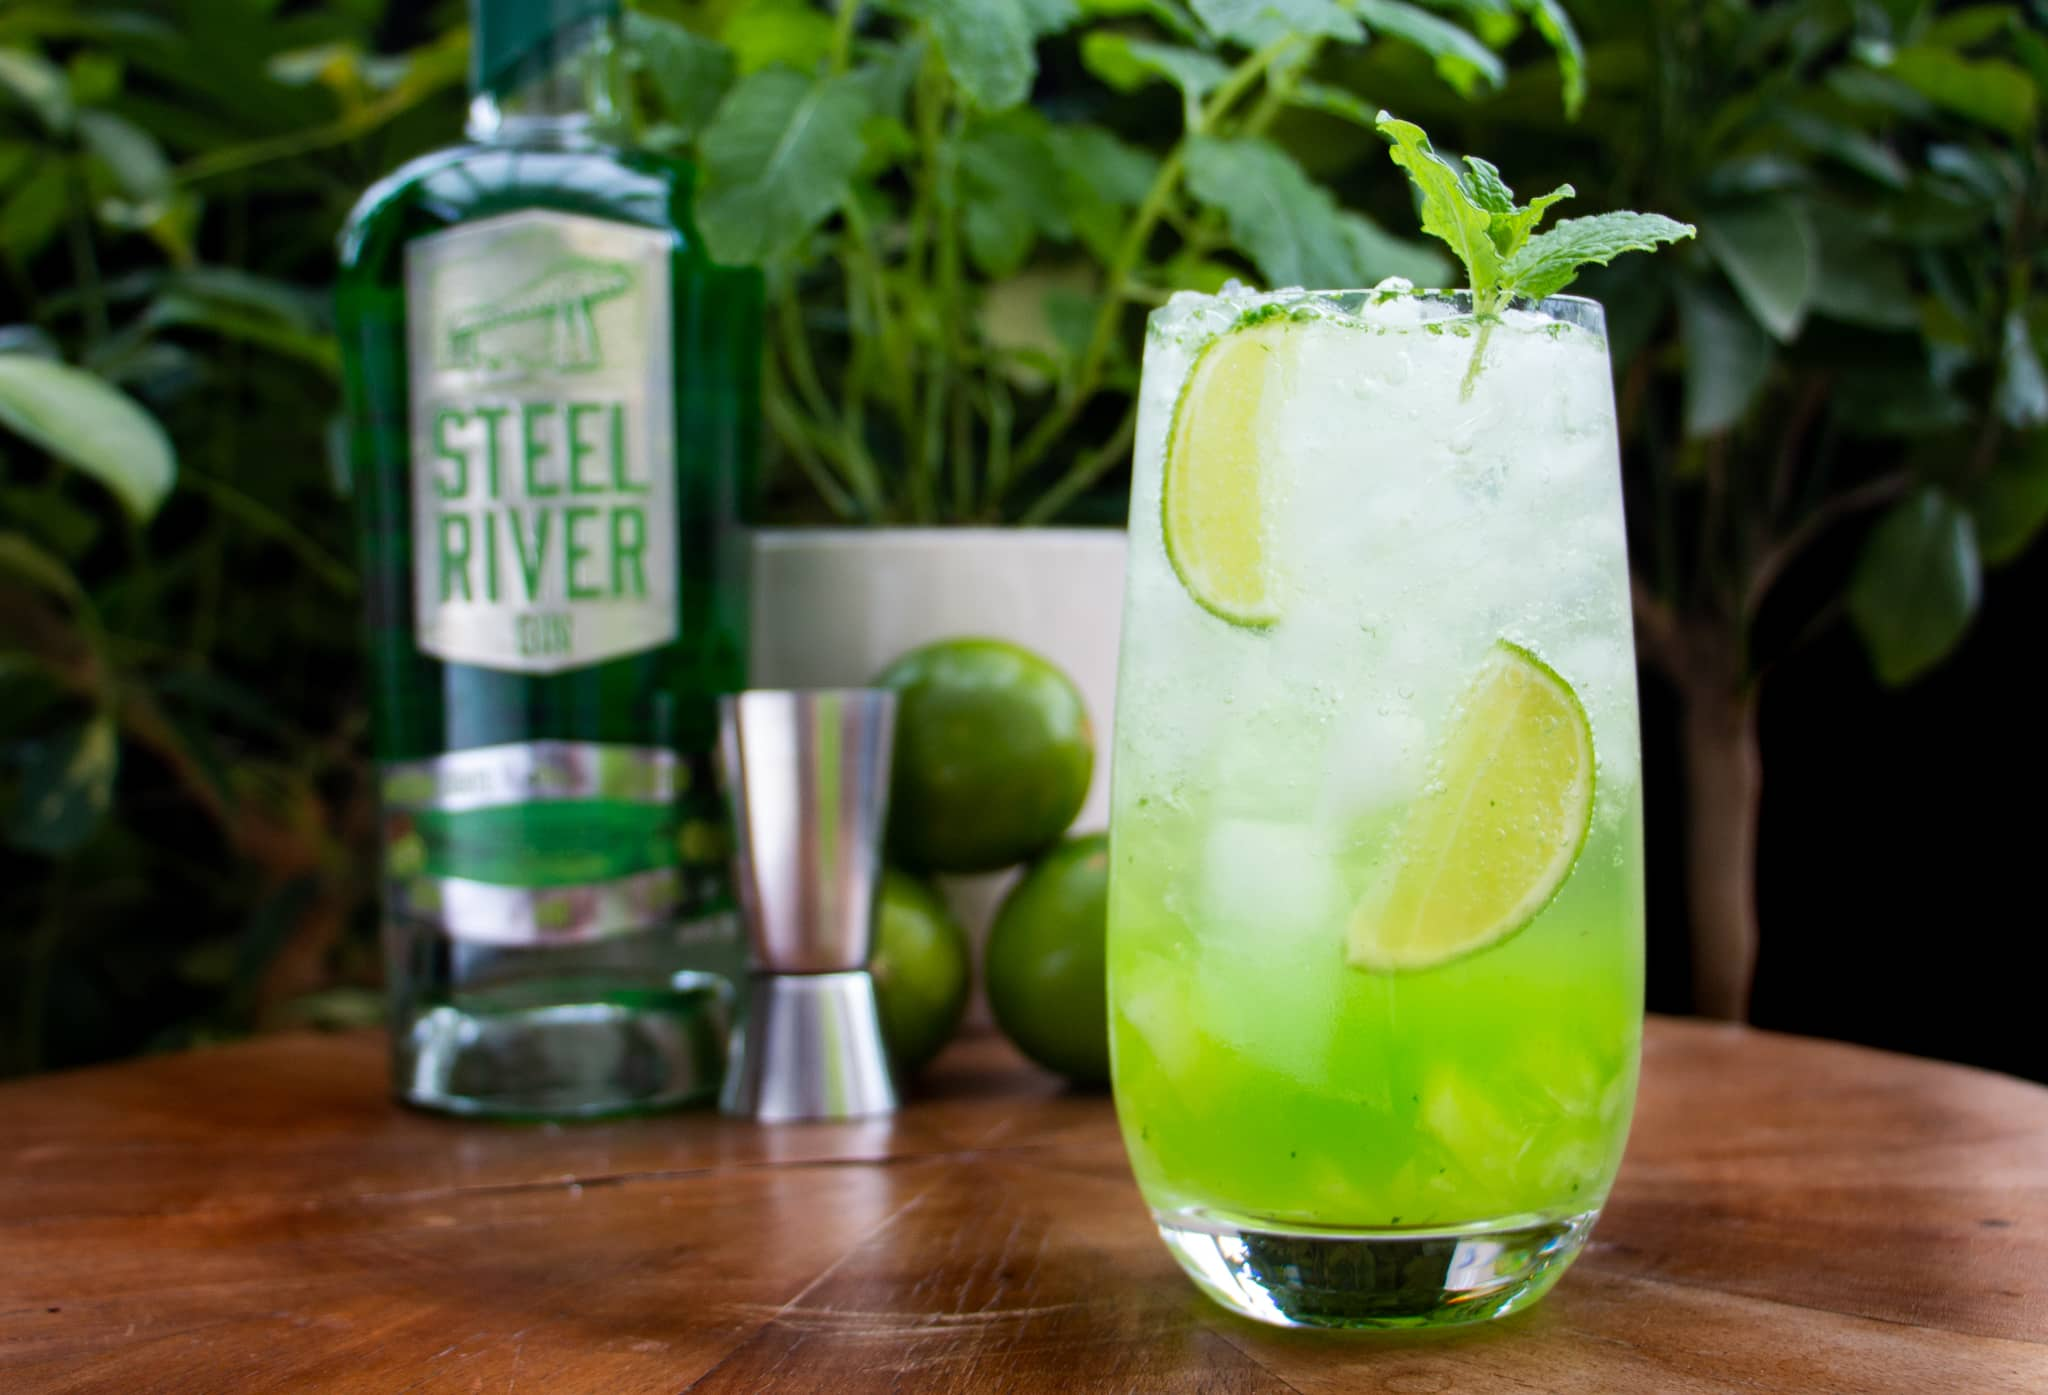 Green Mojito in Tall glass filled with Ice and lime and mint garnish. Northern Lights Gin bottle in background with limes and mint plant.